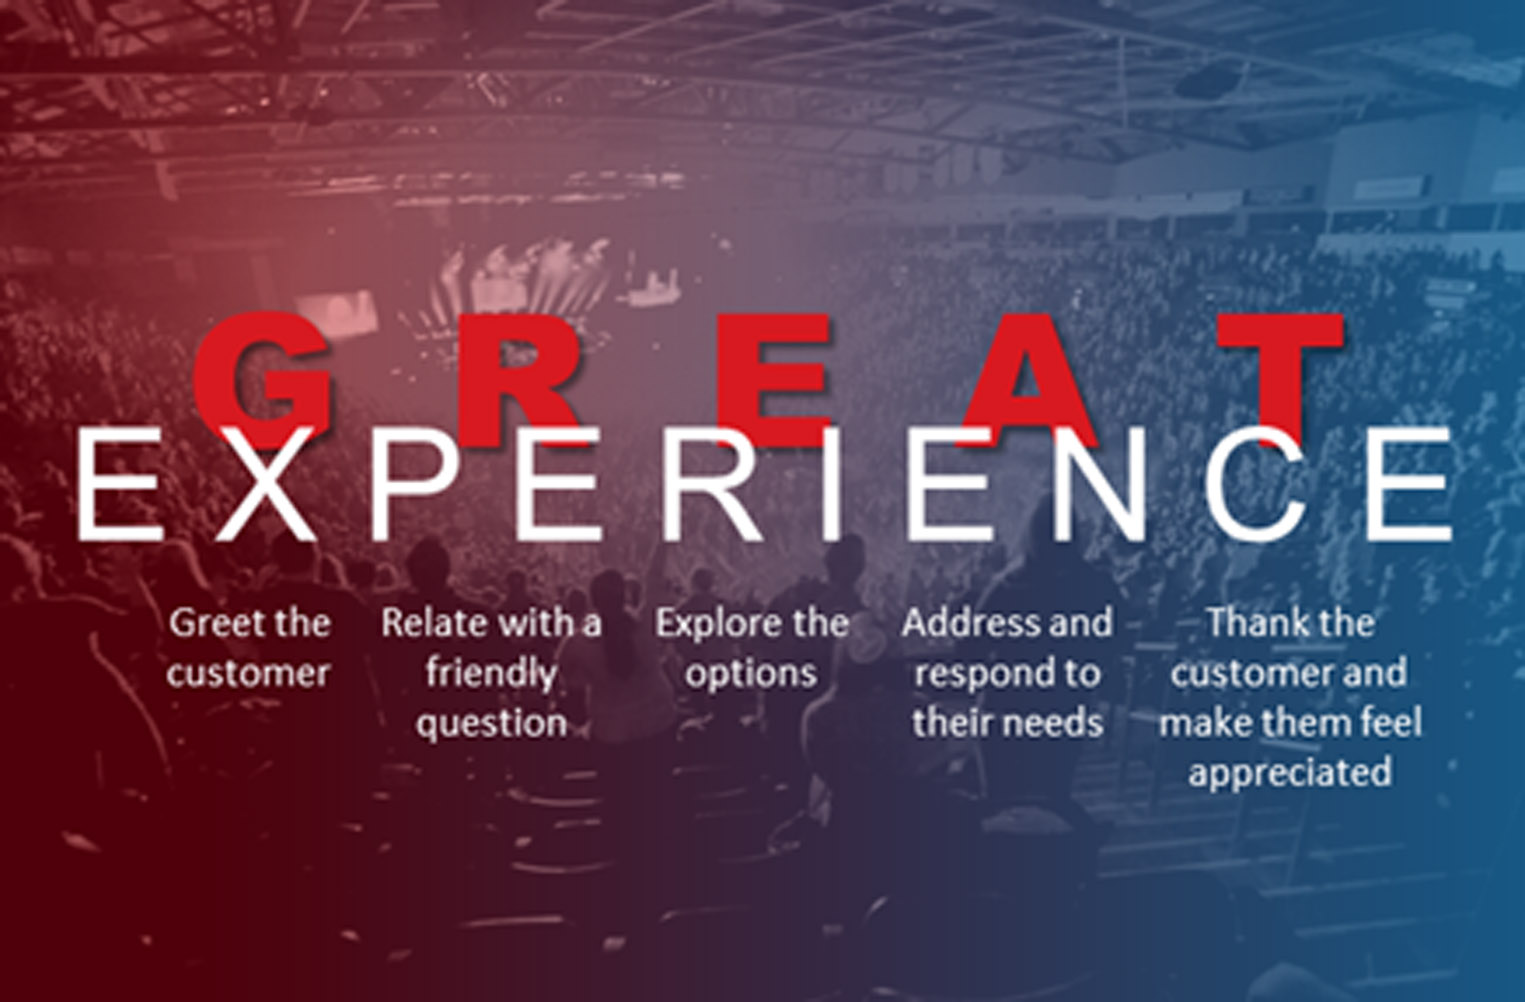 GREAT Experiences (Greet the customer, Relate with a friendly question, Explore the options, Address and respond to their needs, Thank the customer and make them feel appreciated)